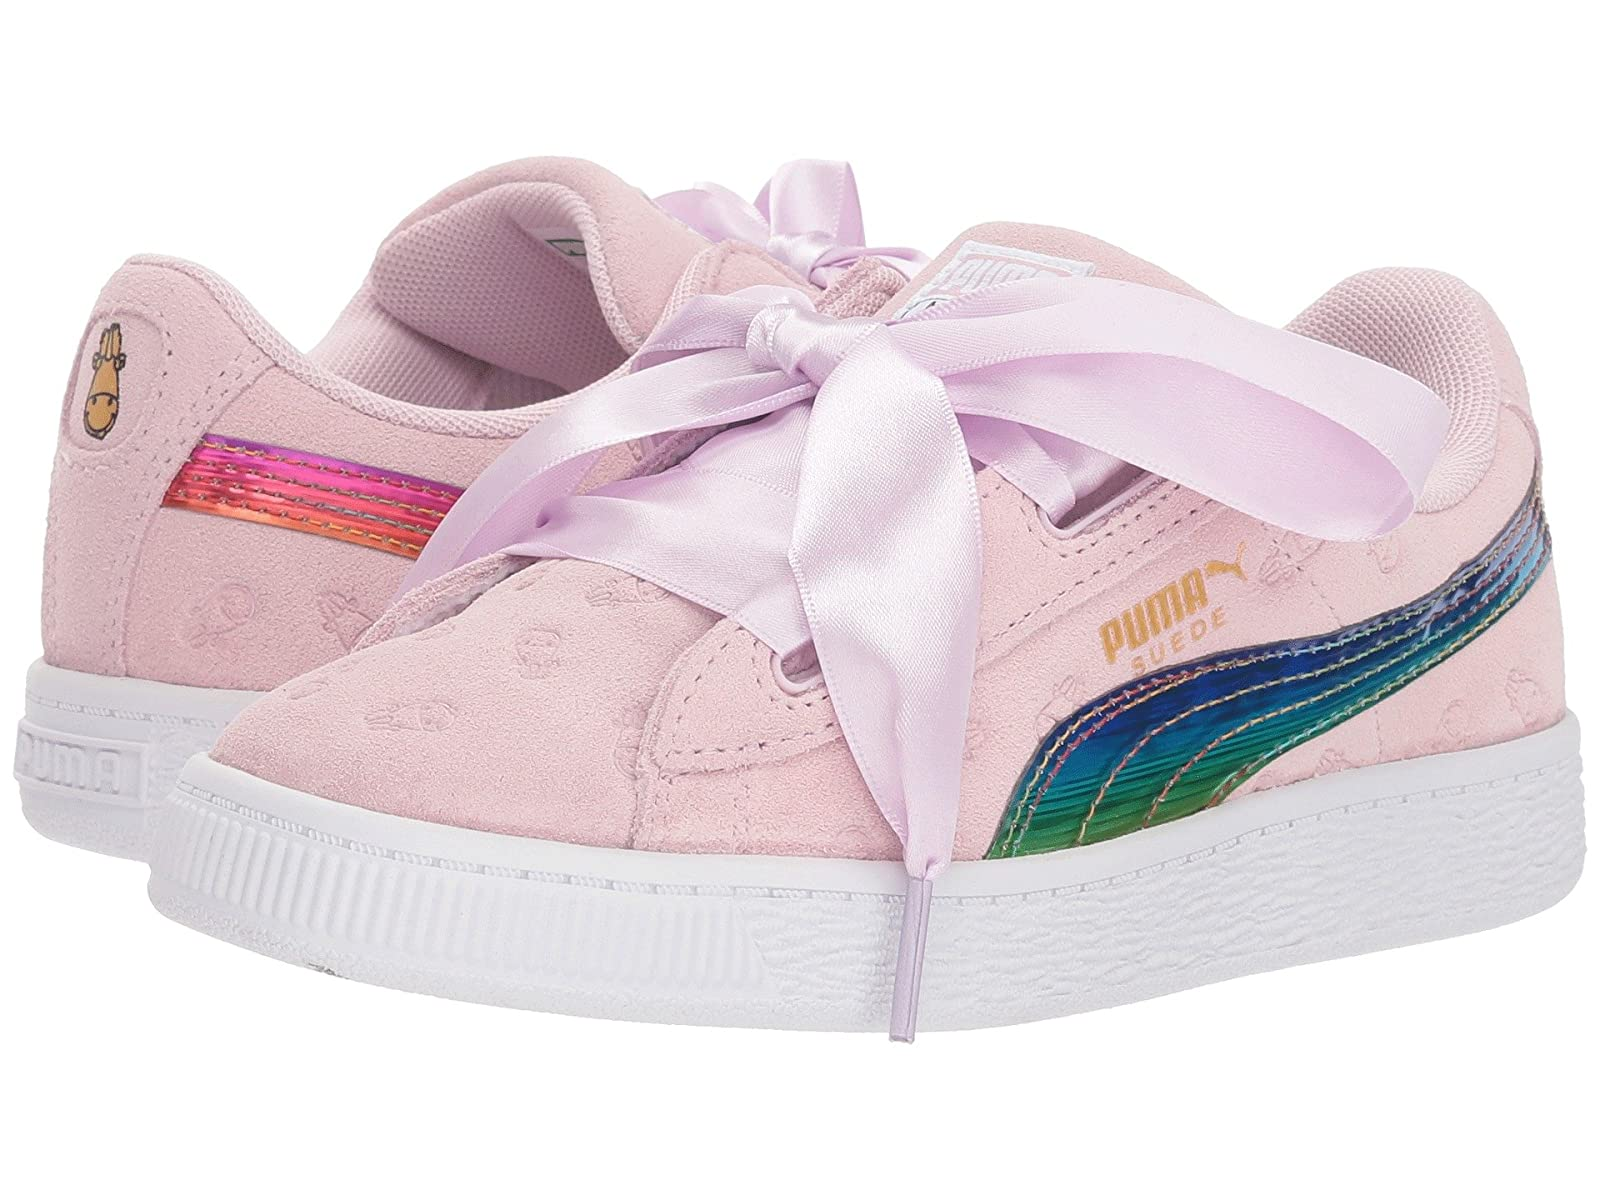 Puma Kids Minions Suede Heart Fluffy (Little Kid/Big Kid)Atmospheric grades have affordable shoes